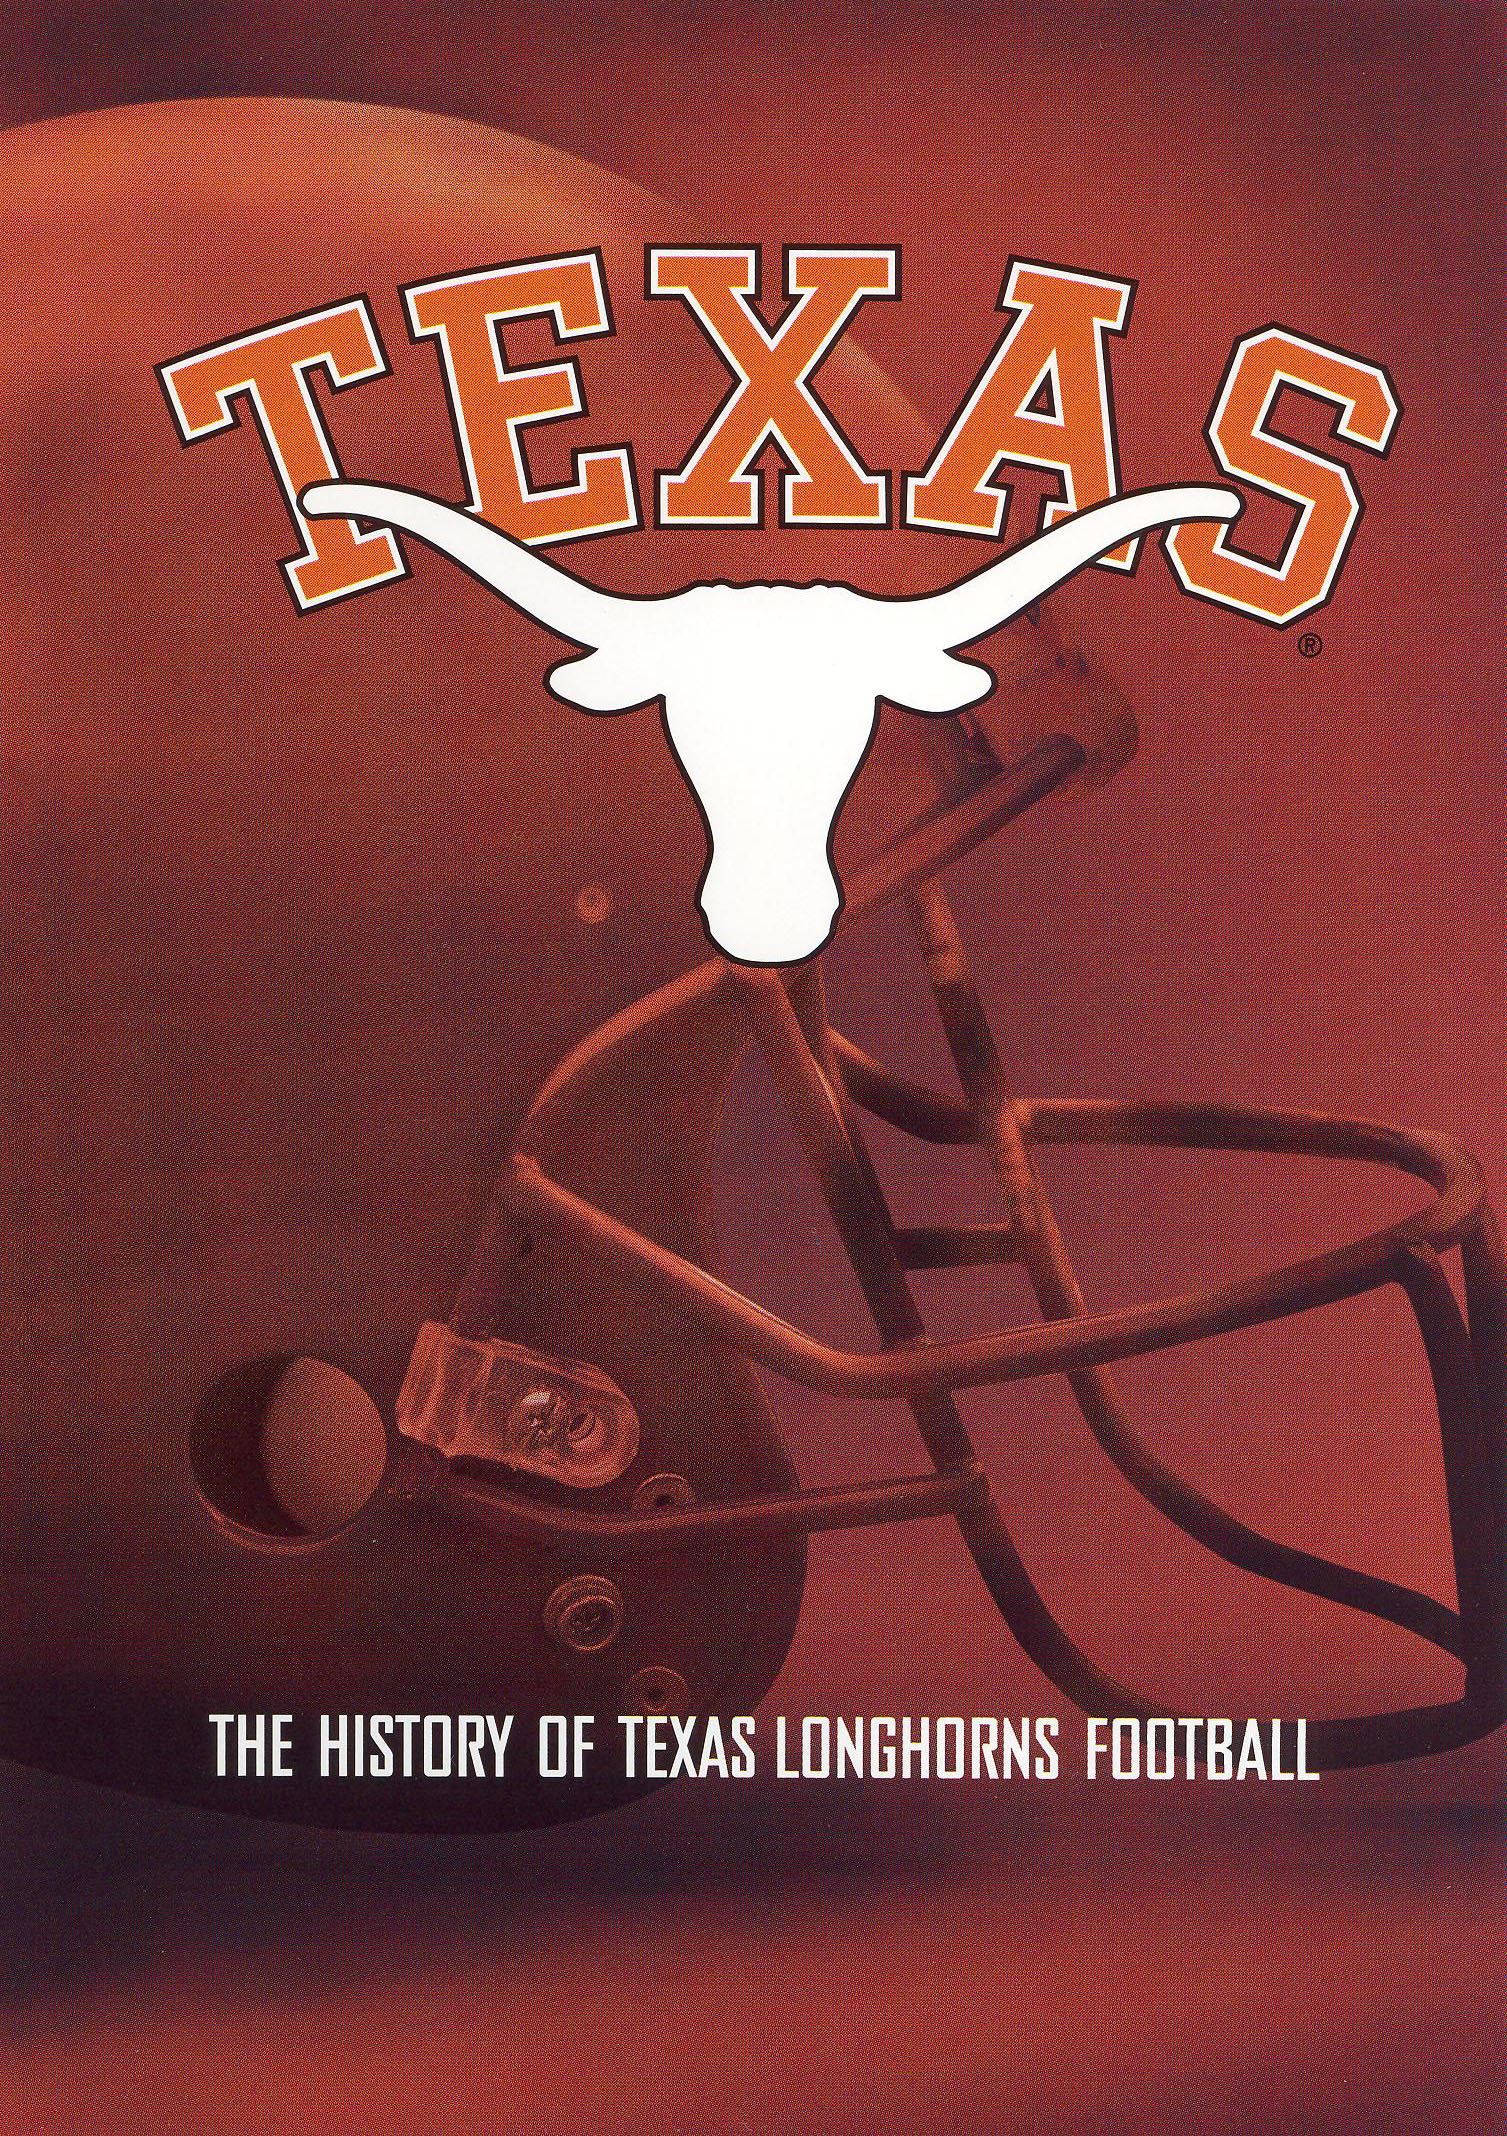 The History of Texas Longhorns Football